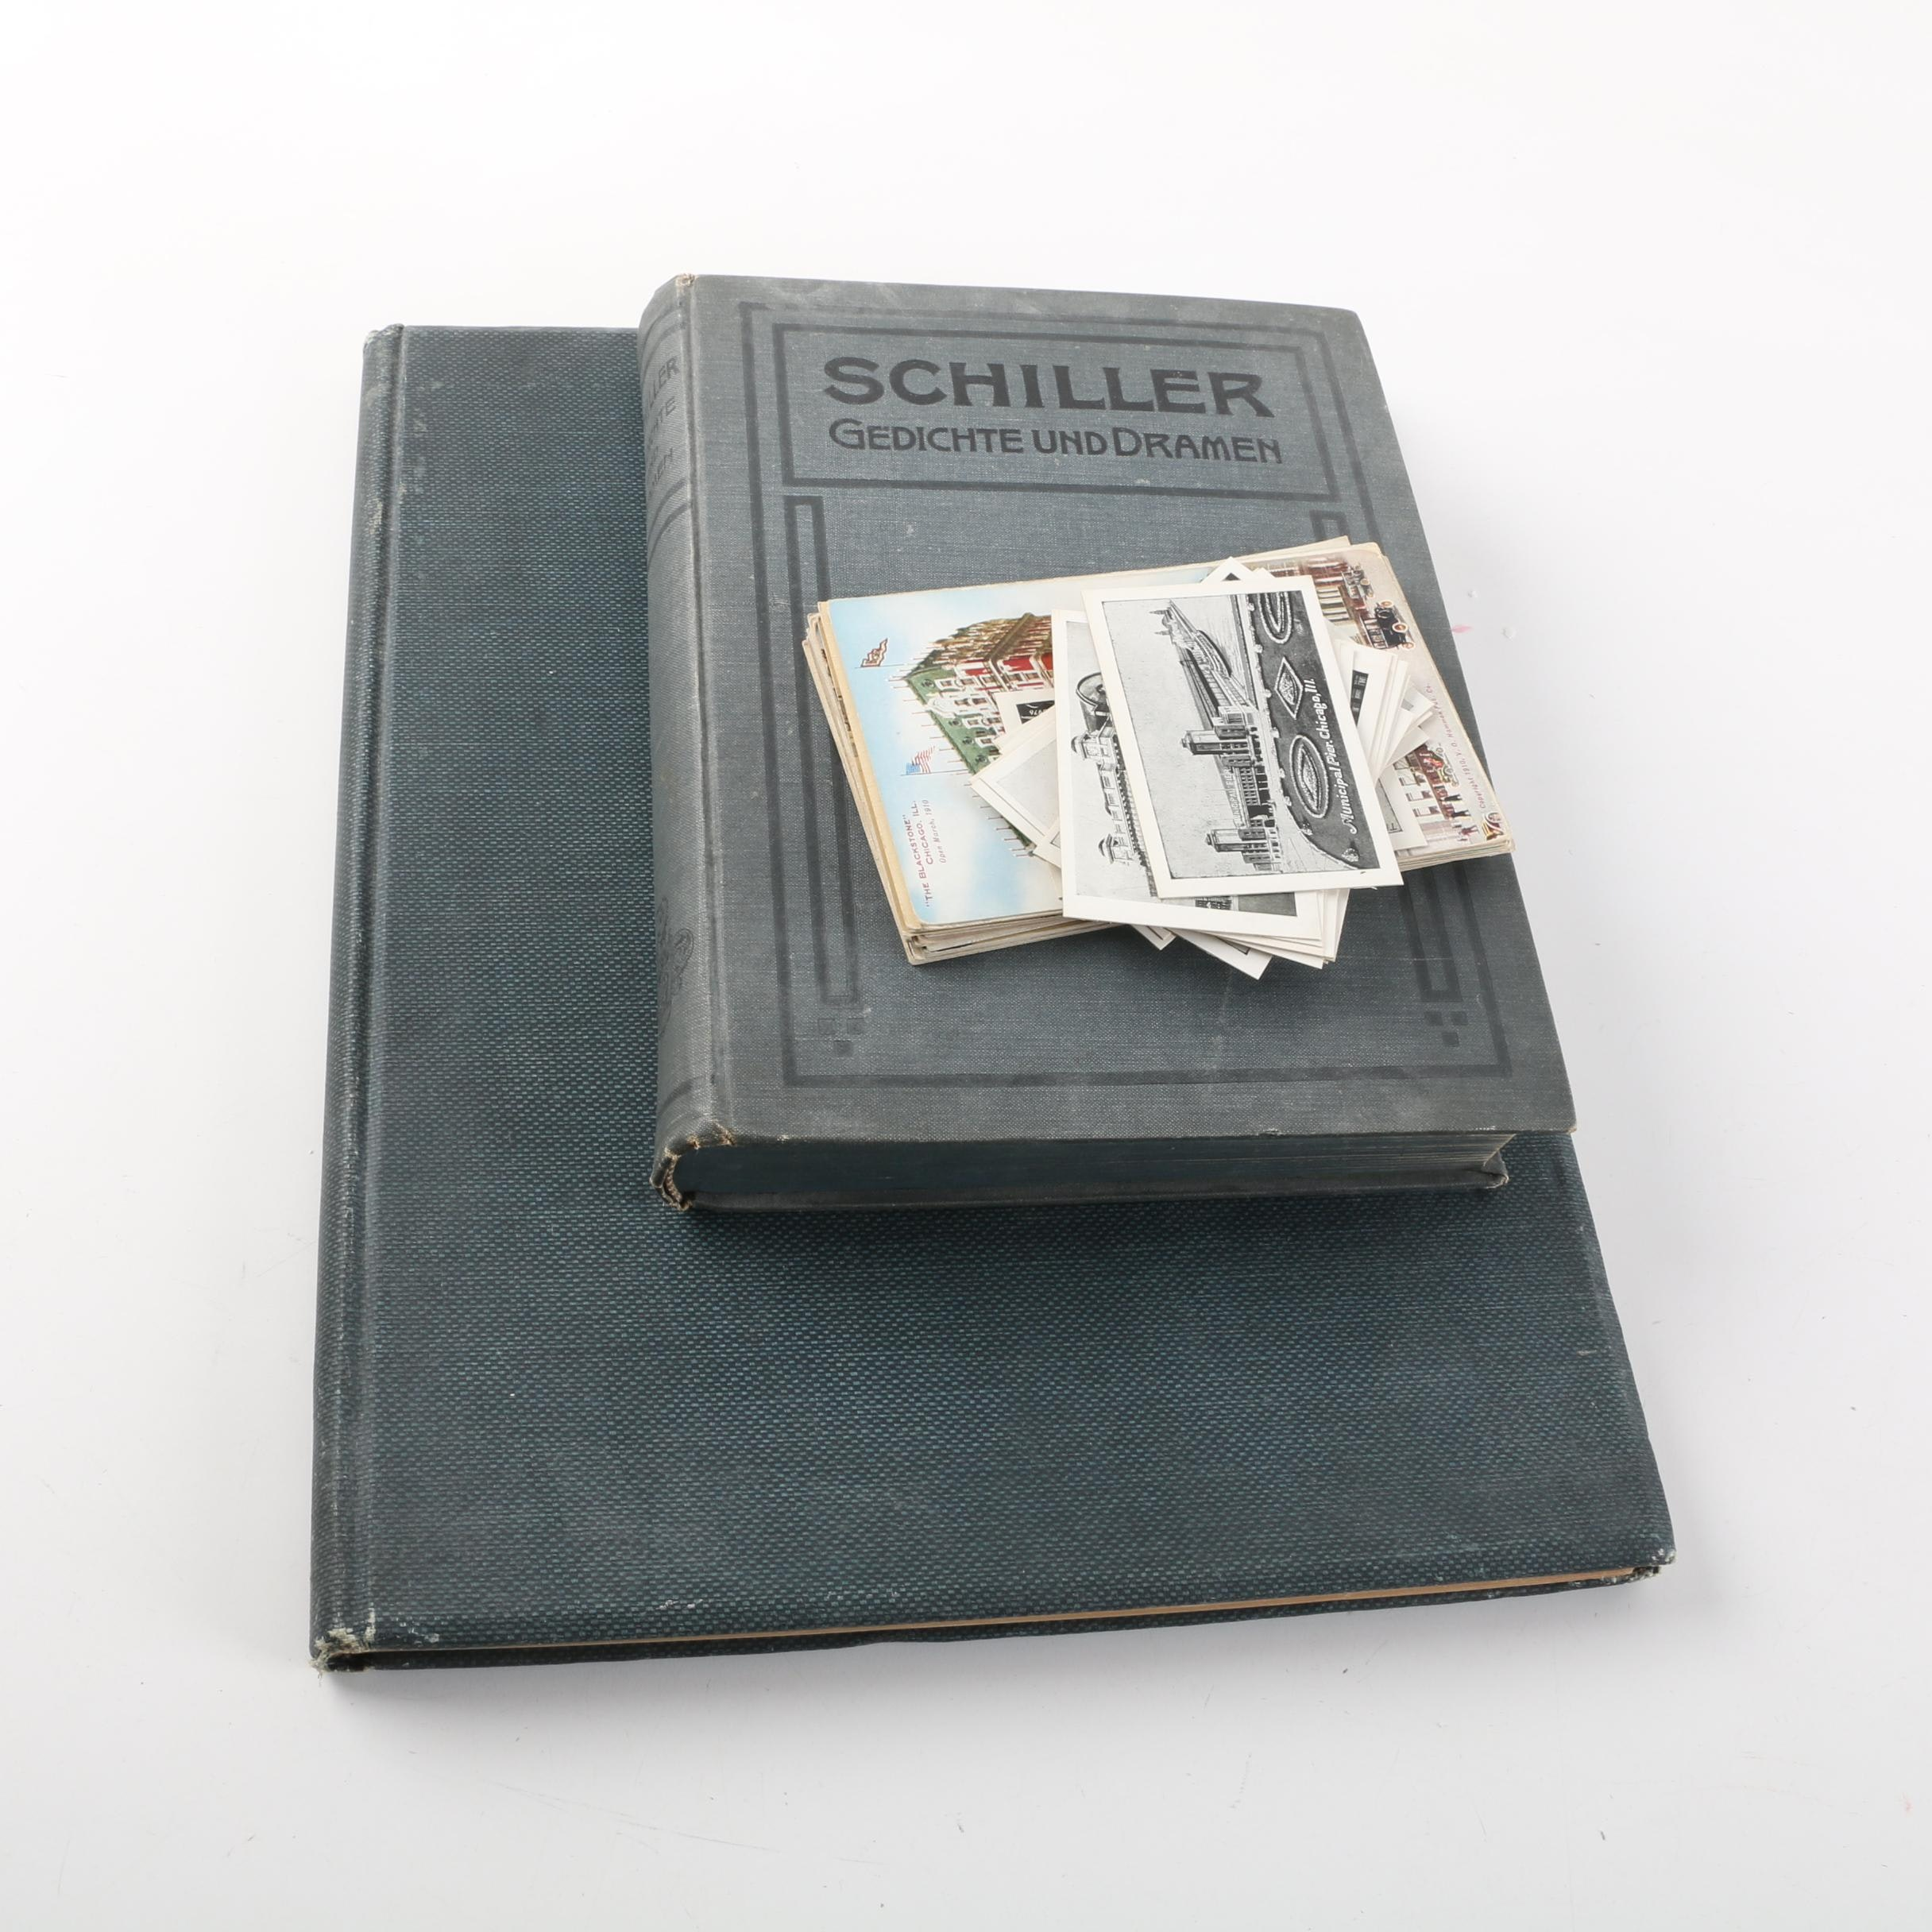 German Language Books Commemorating Schiller and Chicago Architecture Postcards